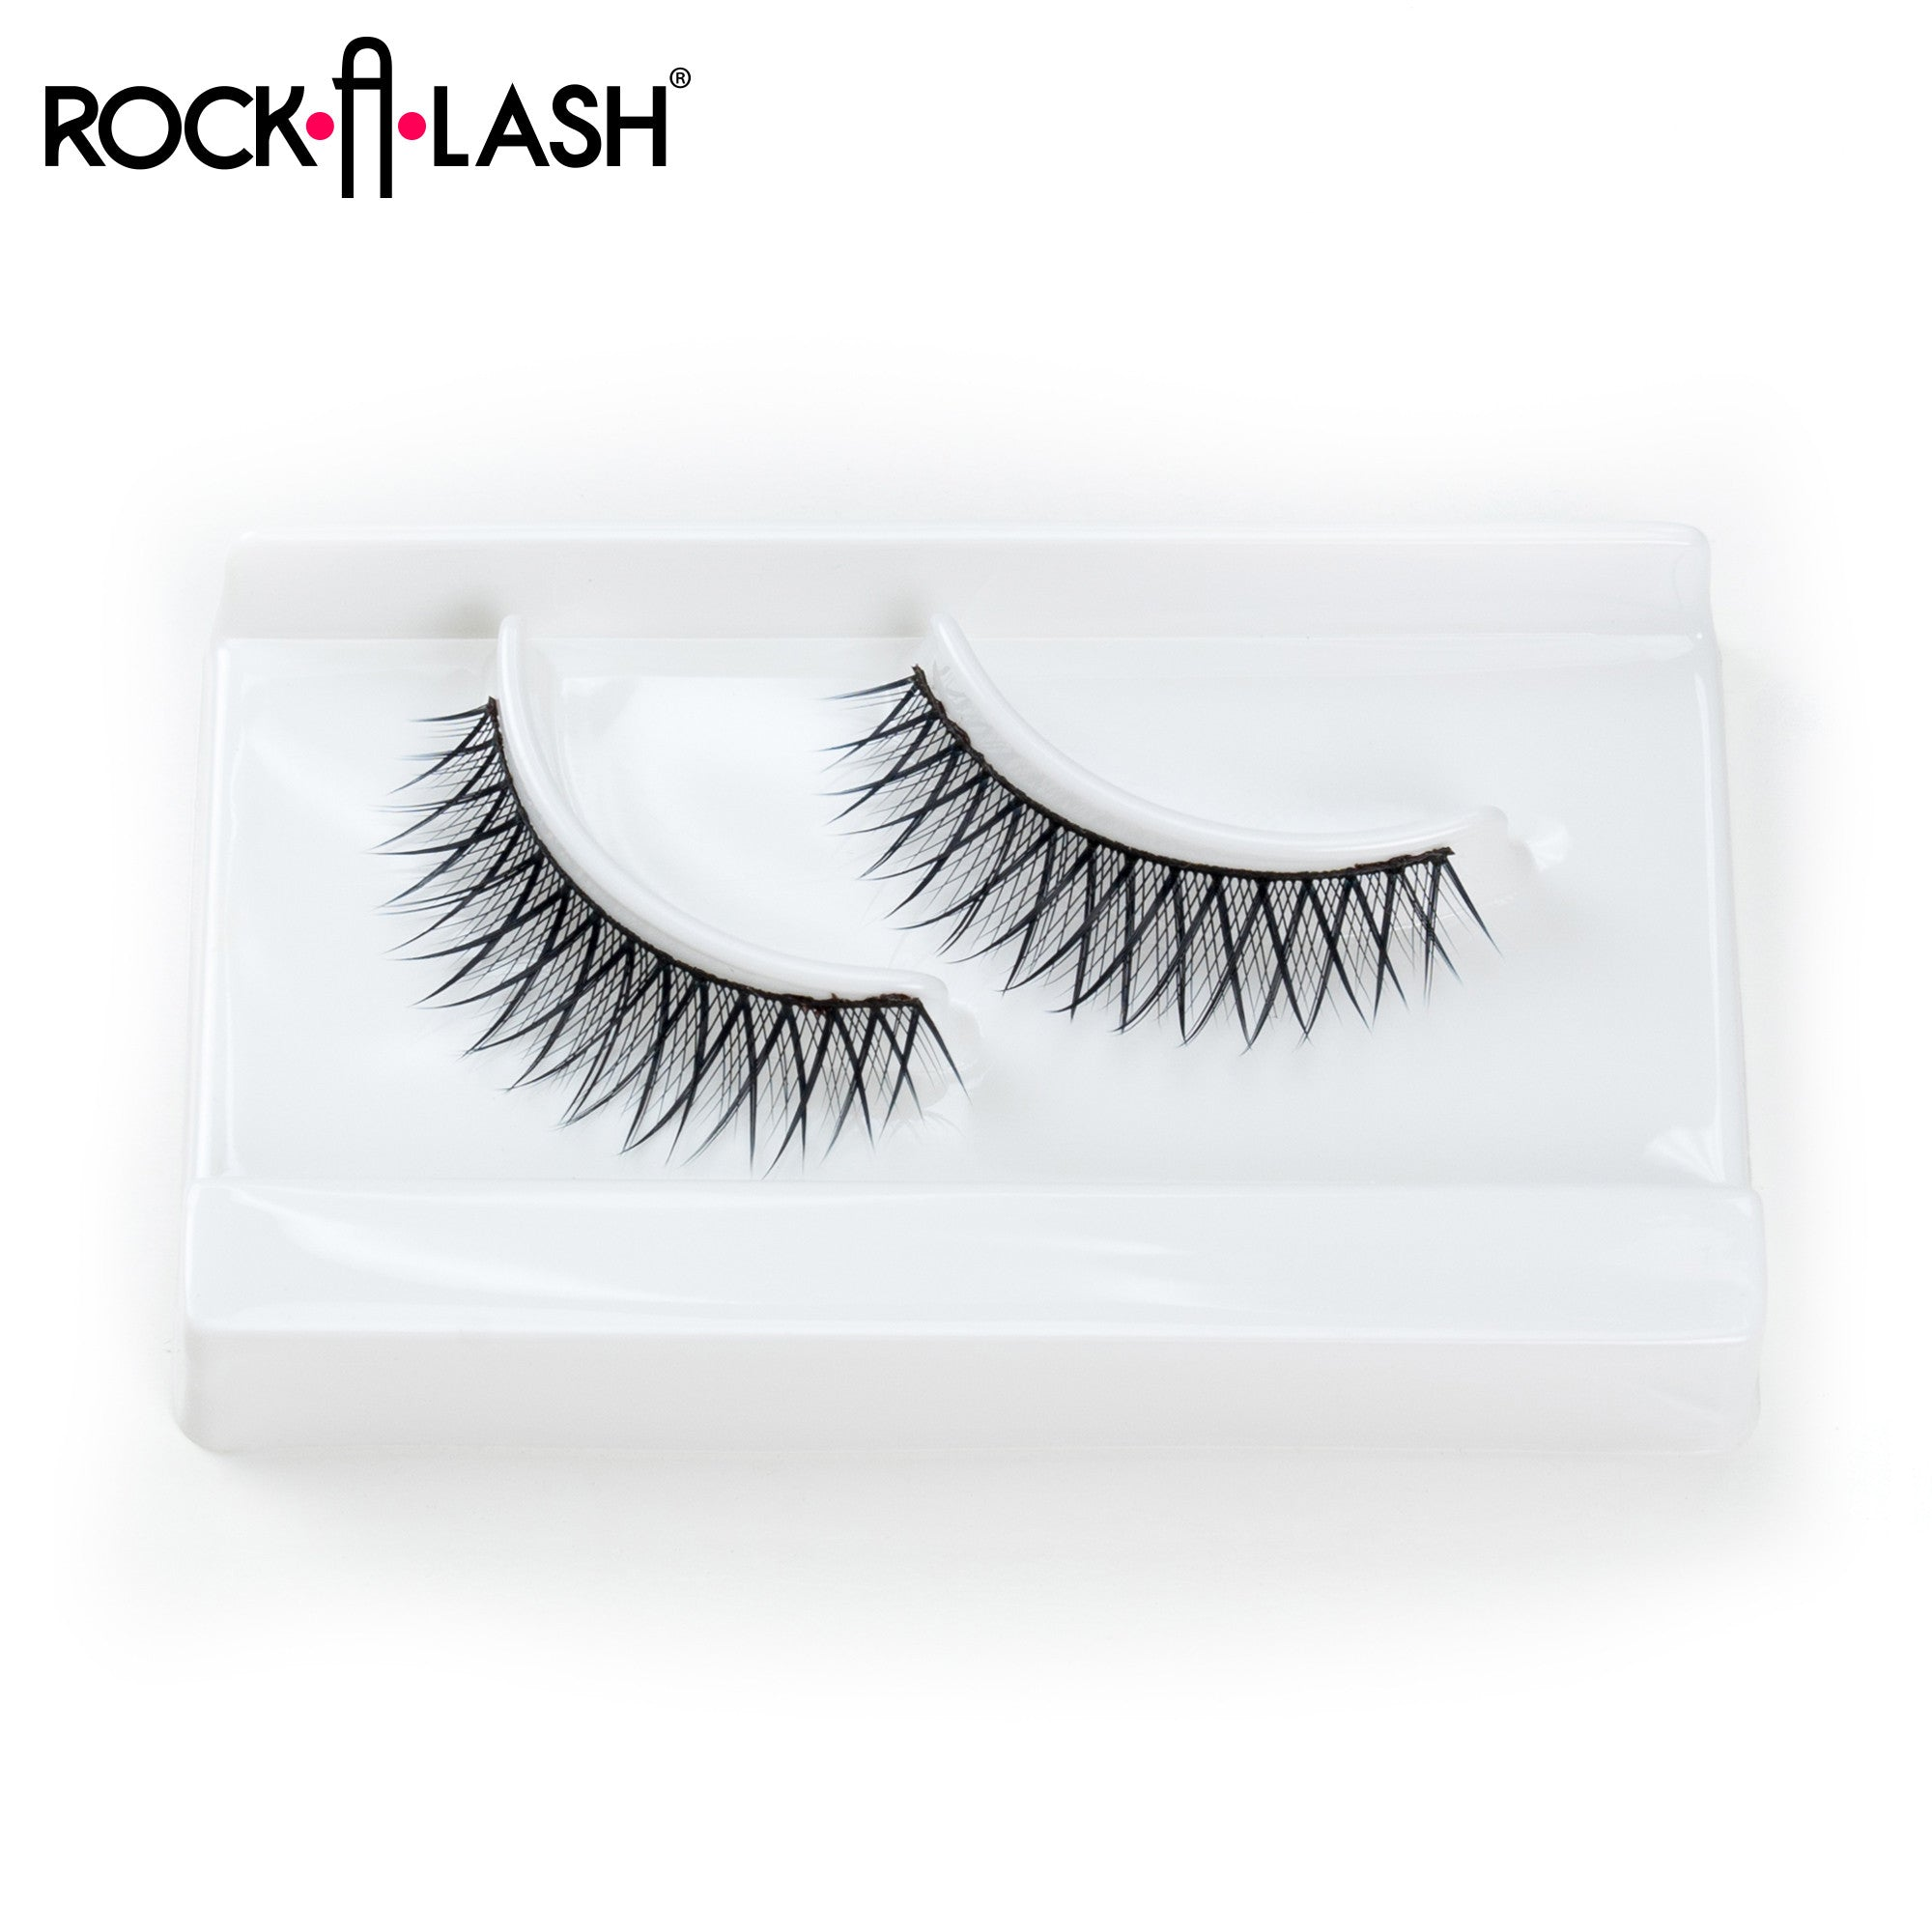 Rock-A-Lash ® <br> #9 - New York™ - 1 Pair